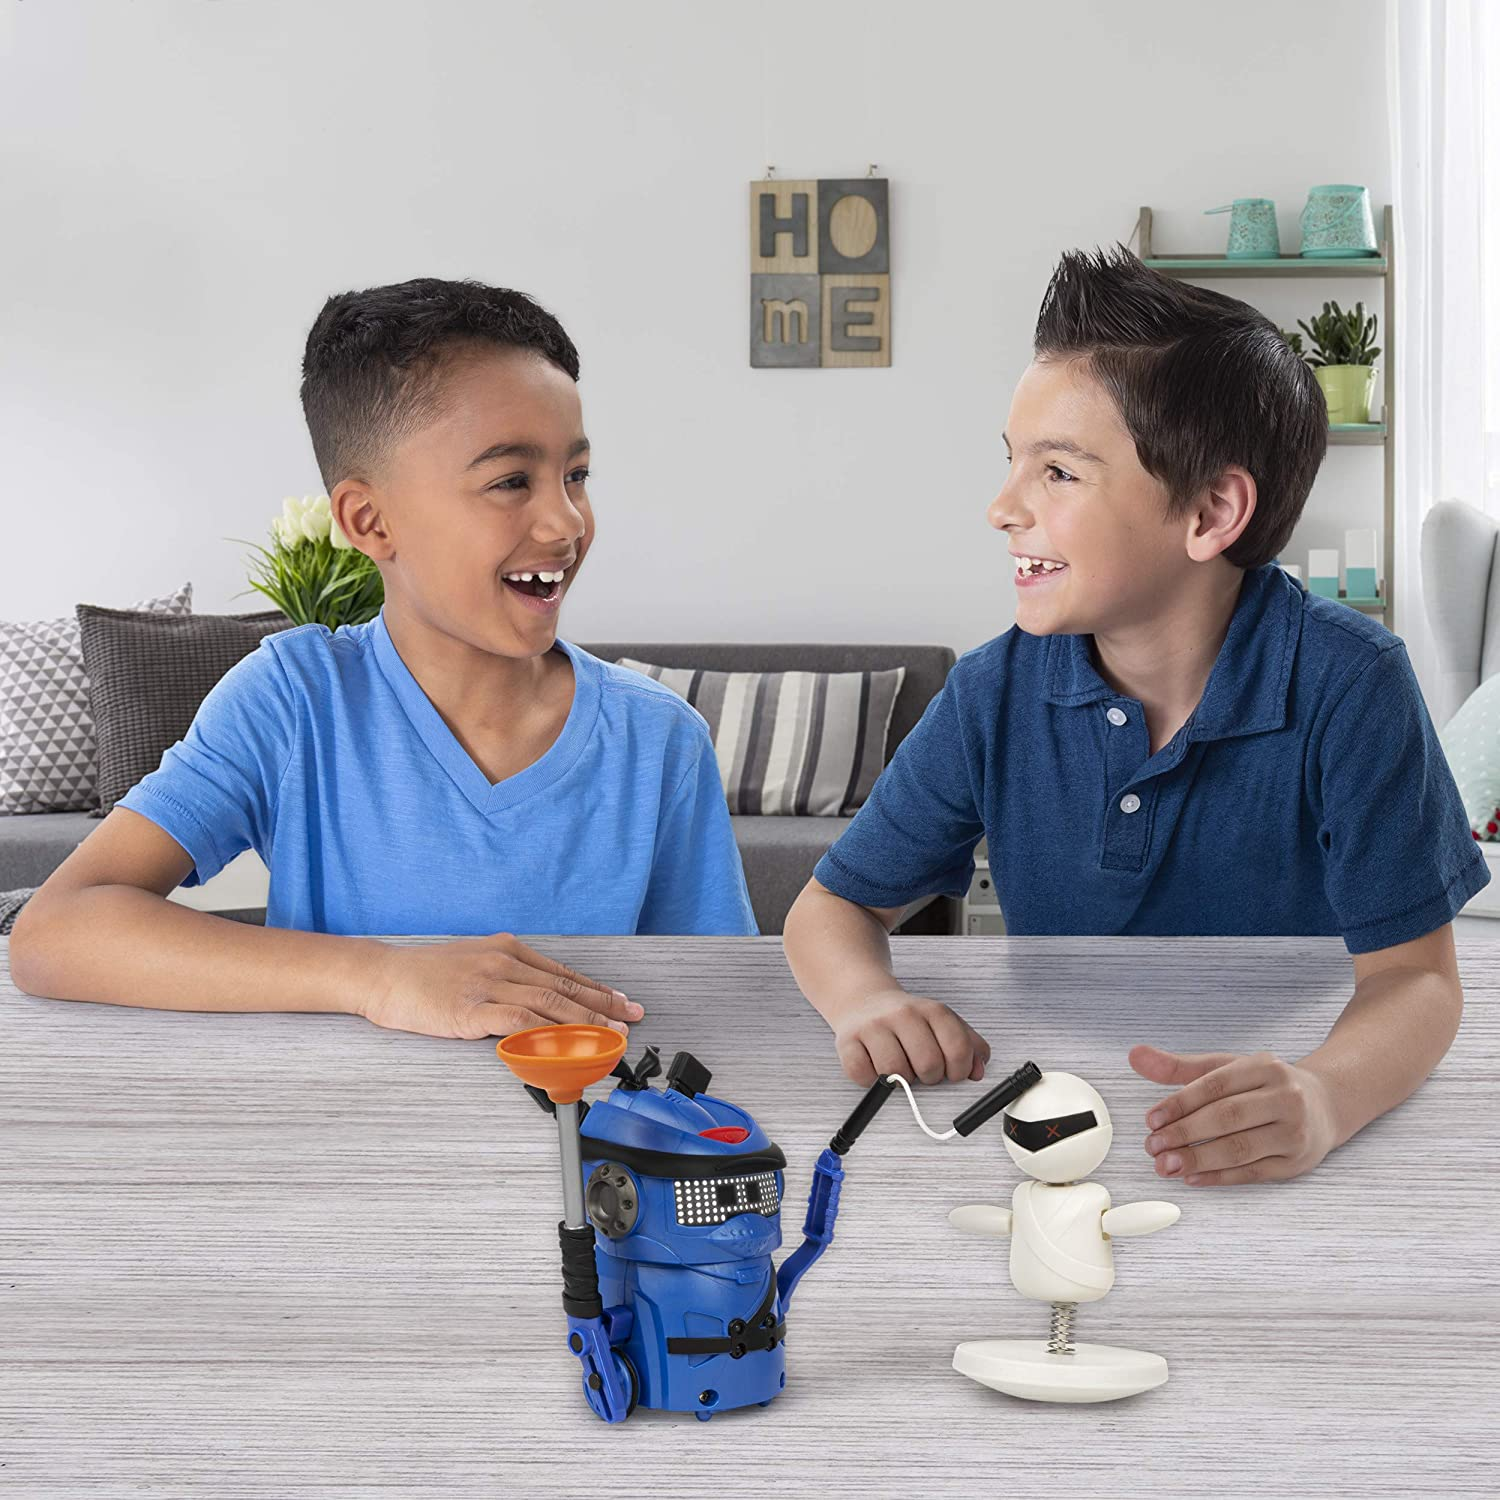 Ninja Bots Battling Robots - Kids watching the fighting actions of the toy